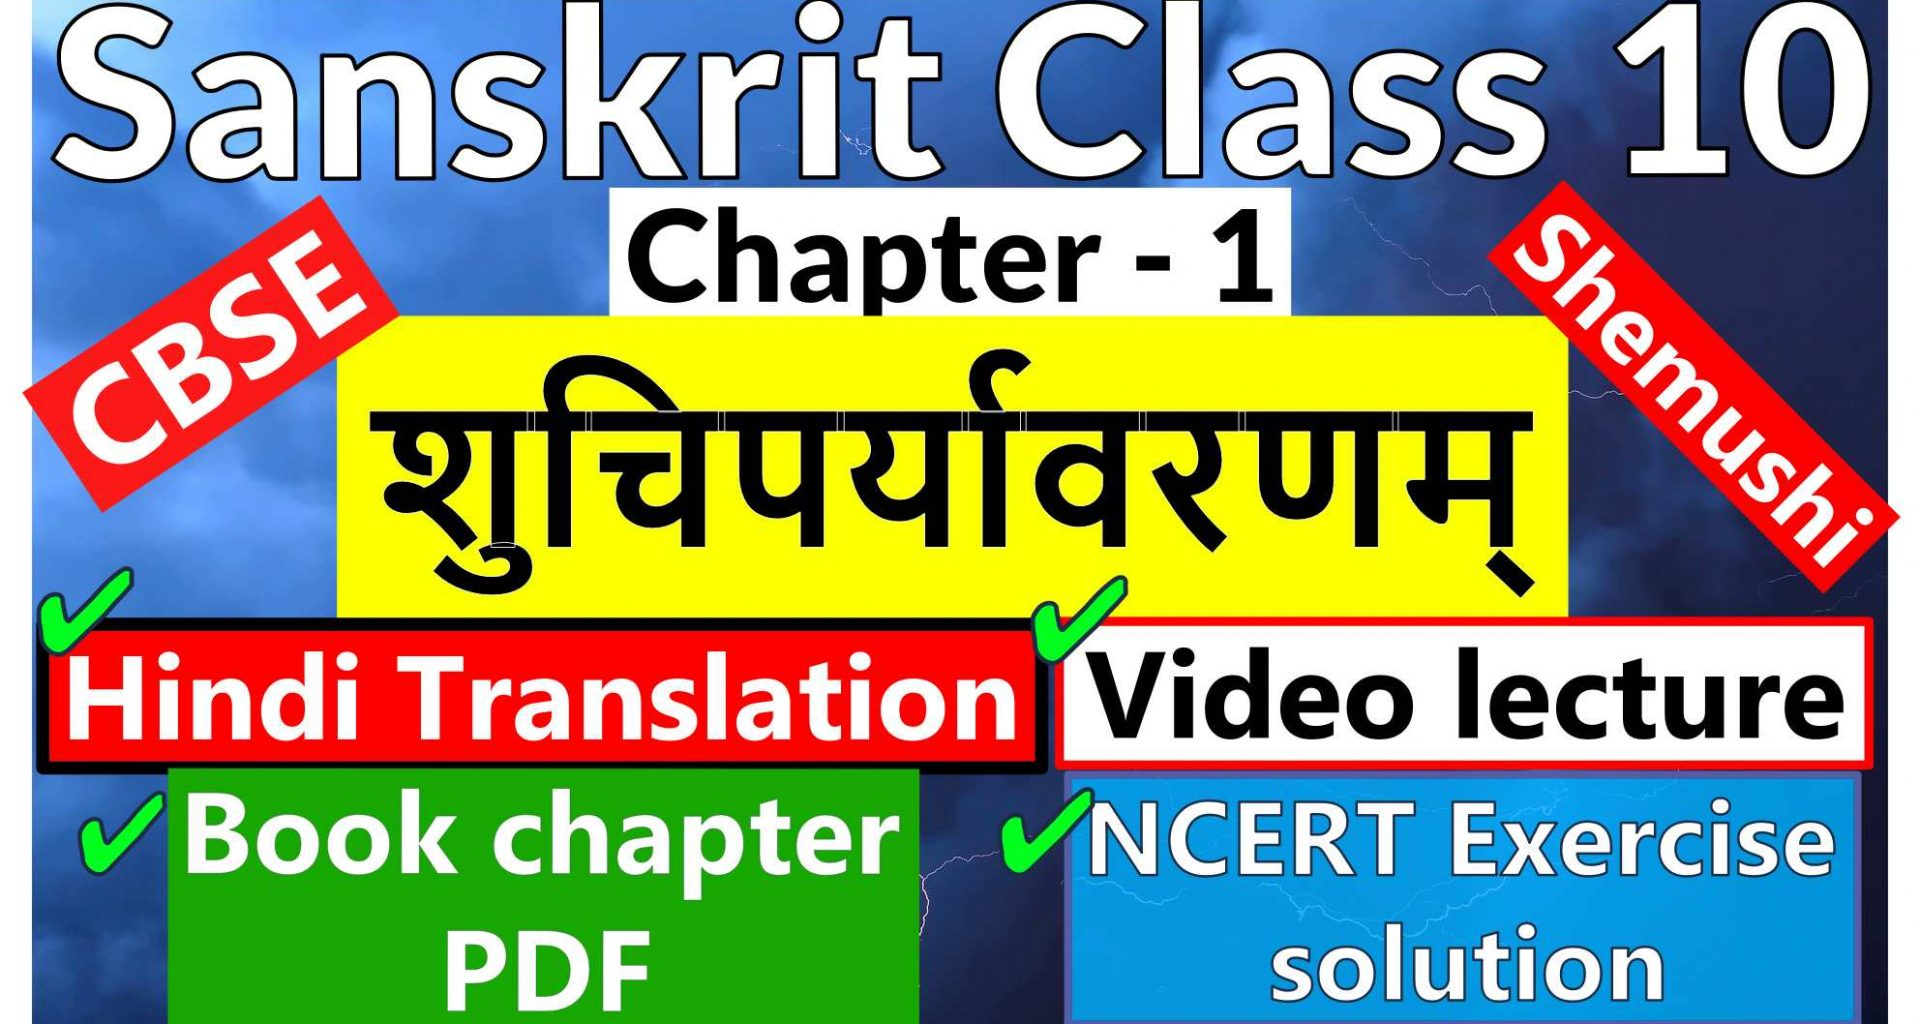 CBSE Sanskrit Class 10 Shemushi Chapter 1 - शुचिपर्यावरणम् - NCERT Exercise Solution (Question-Answer), Book chapter PDF